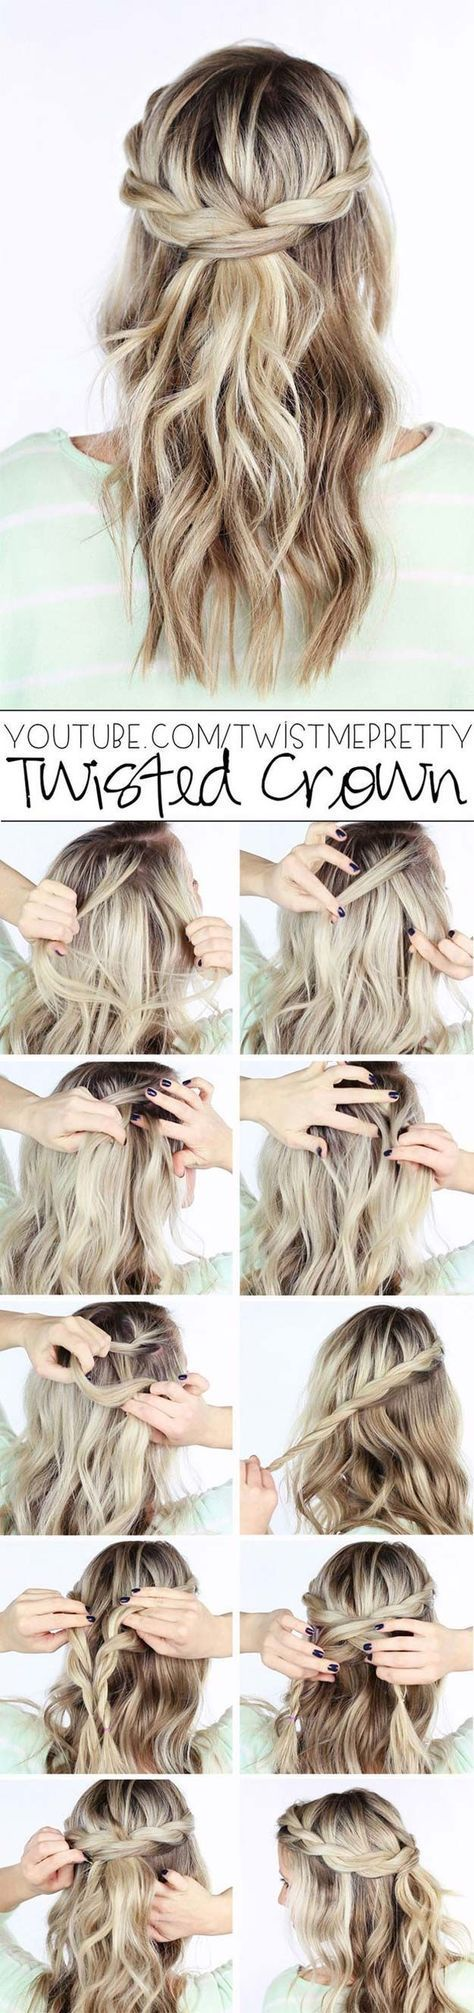 223 best images about everything hair on pinterest hairstyle for 41 diy cool easy hairstyles that real people can actually do at home ccuart Images